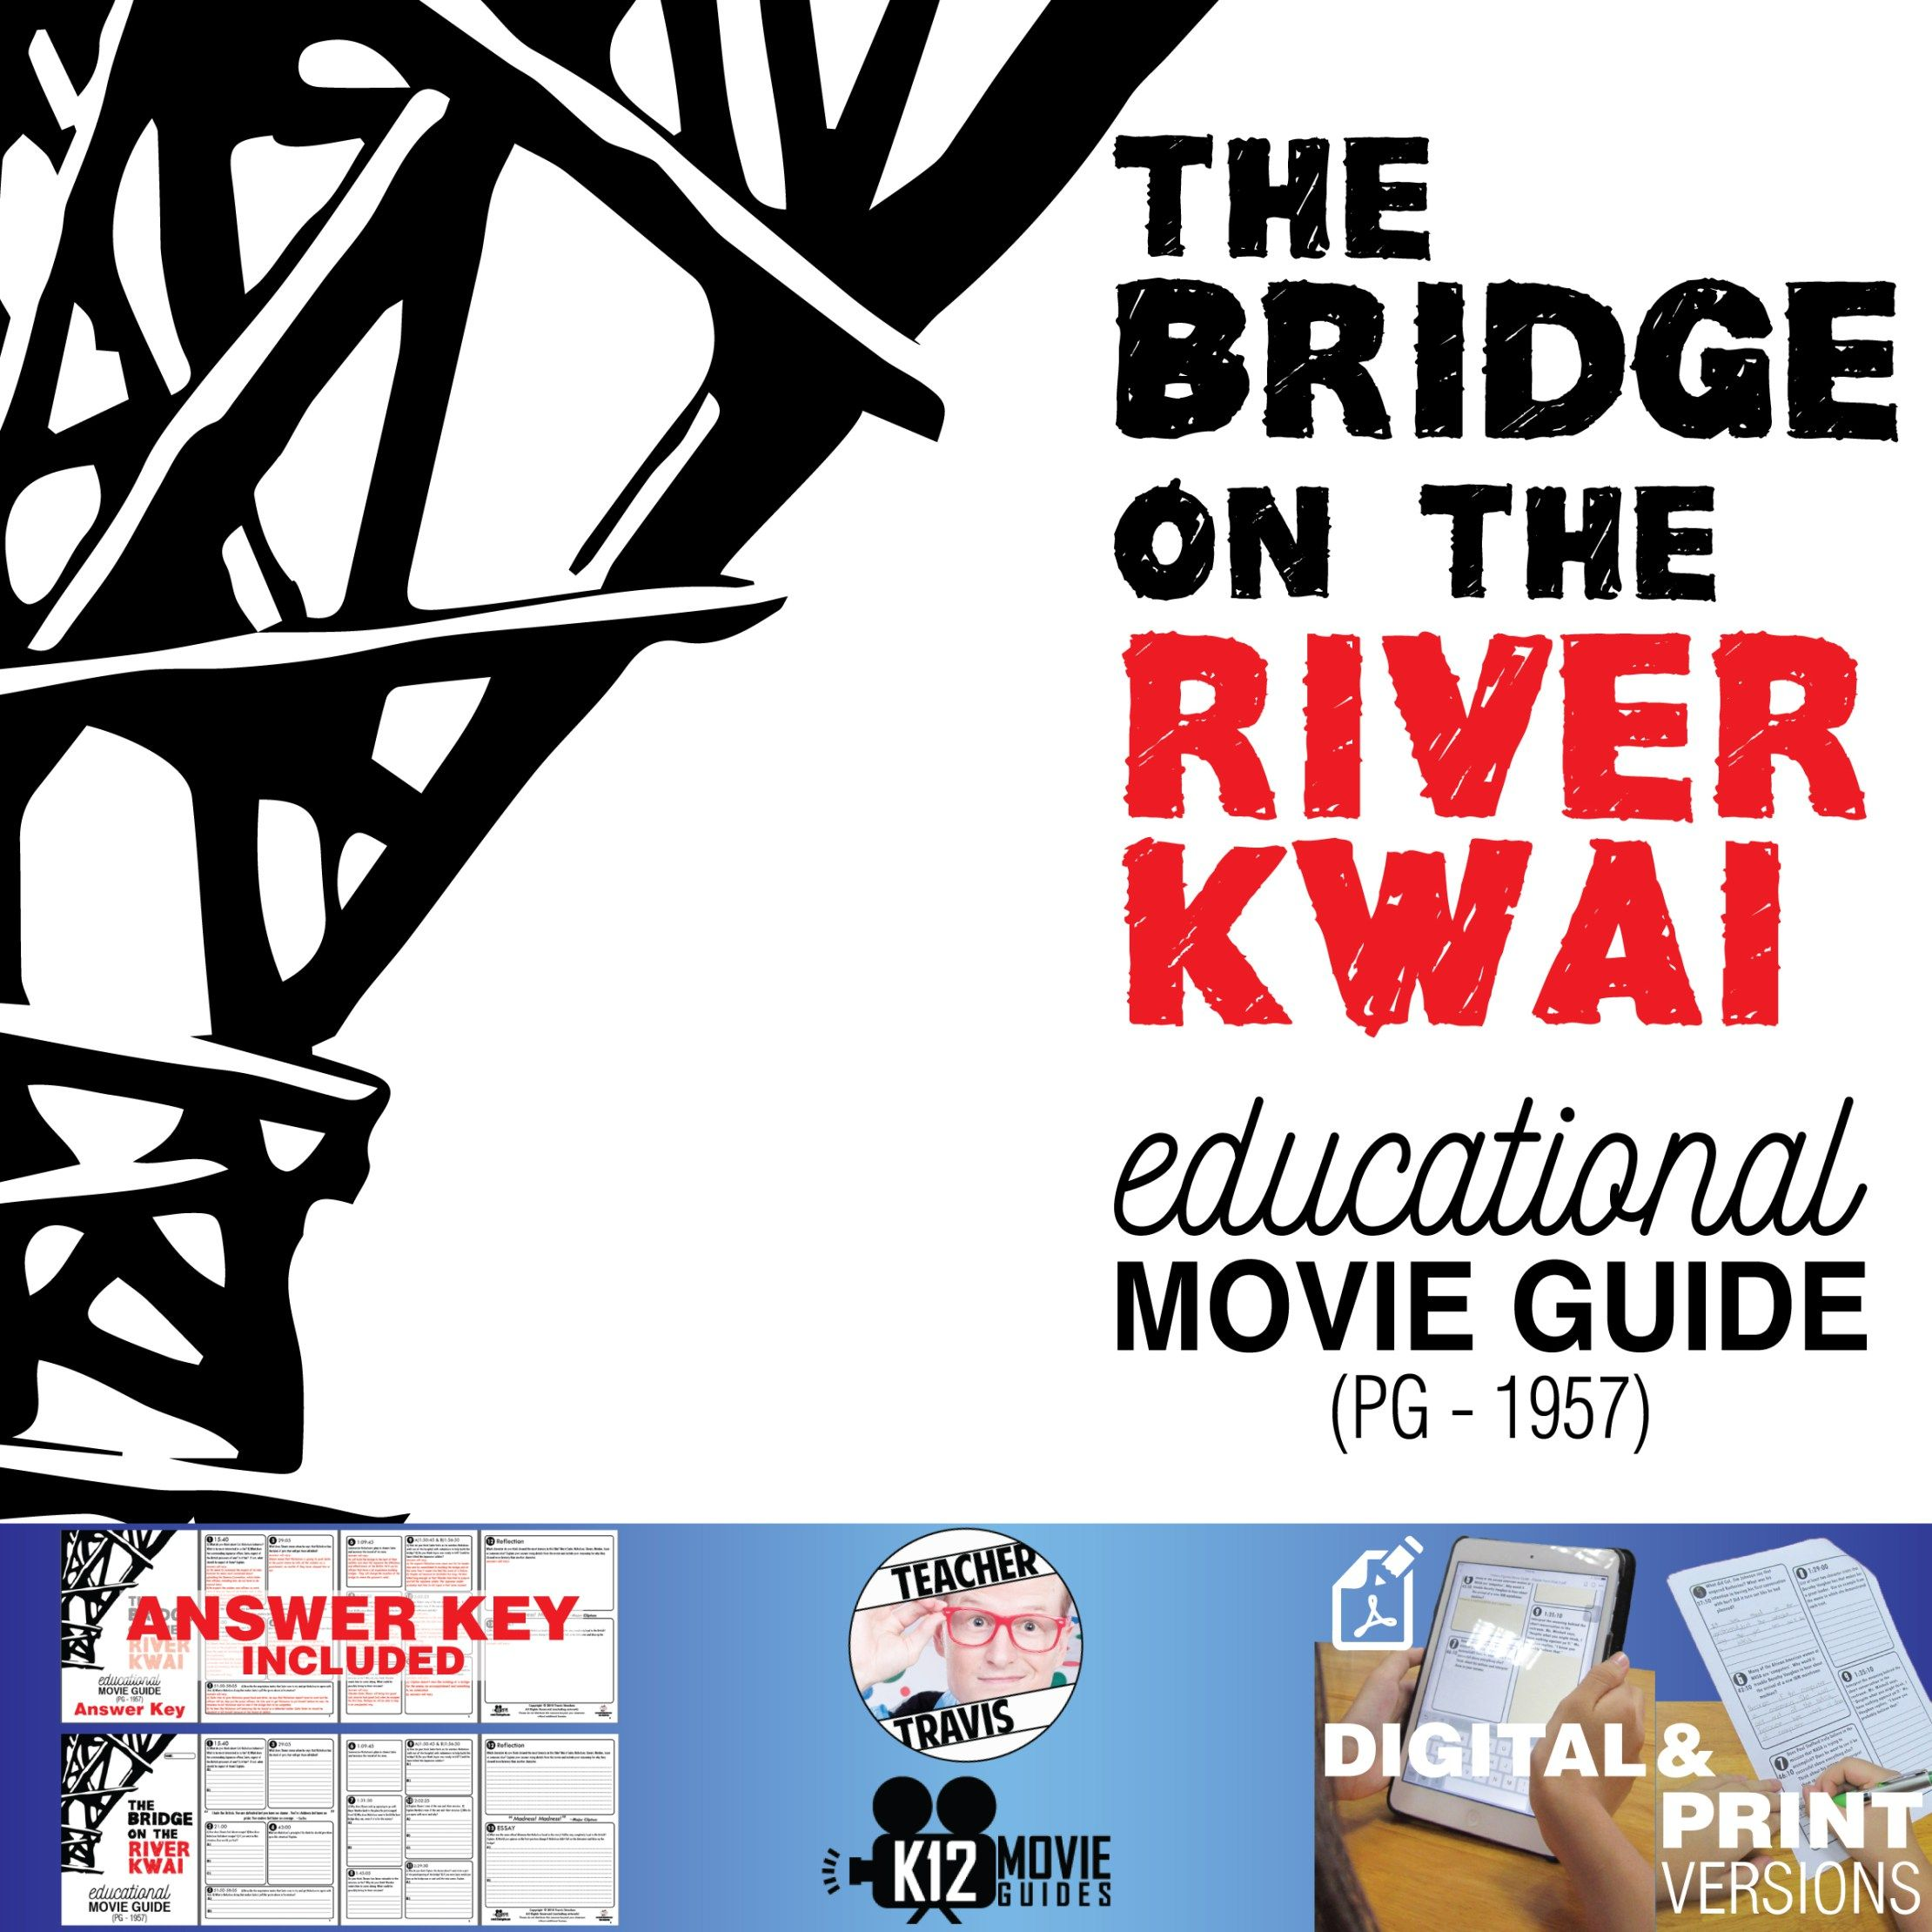 The Bridge On The River Kwai Movie Guide